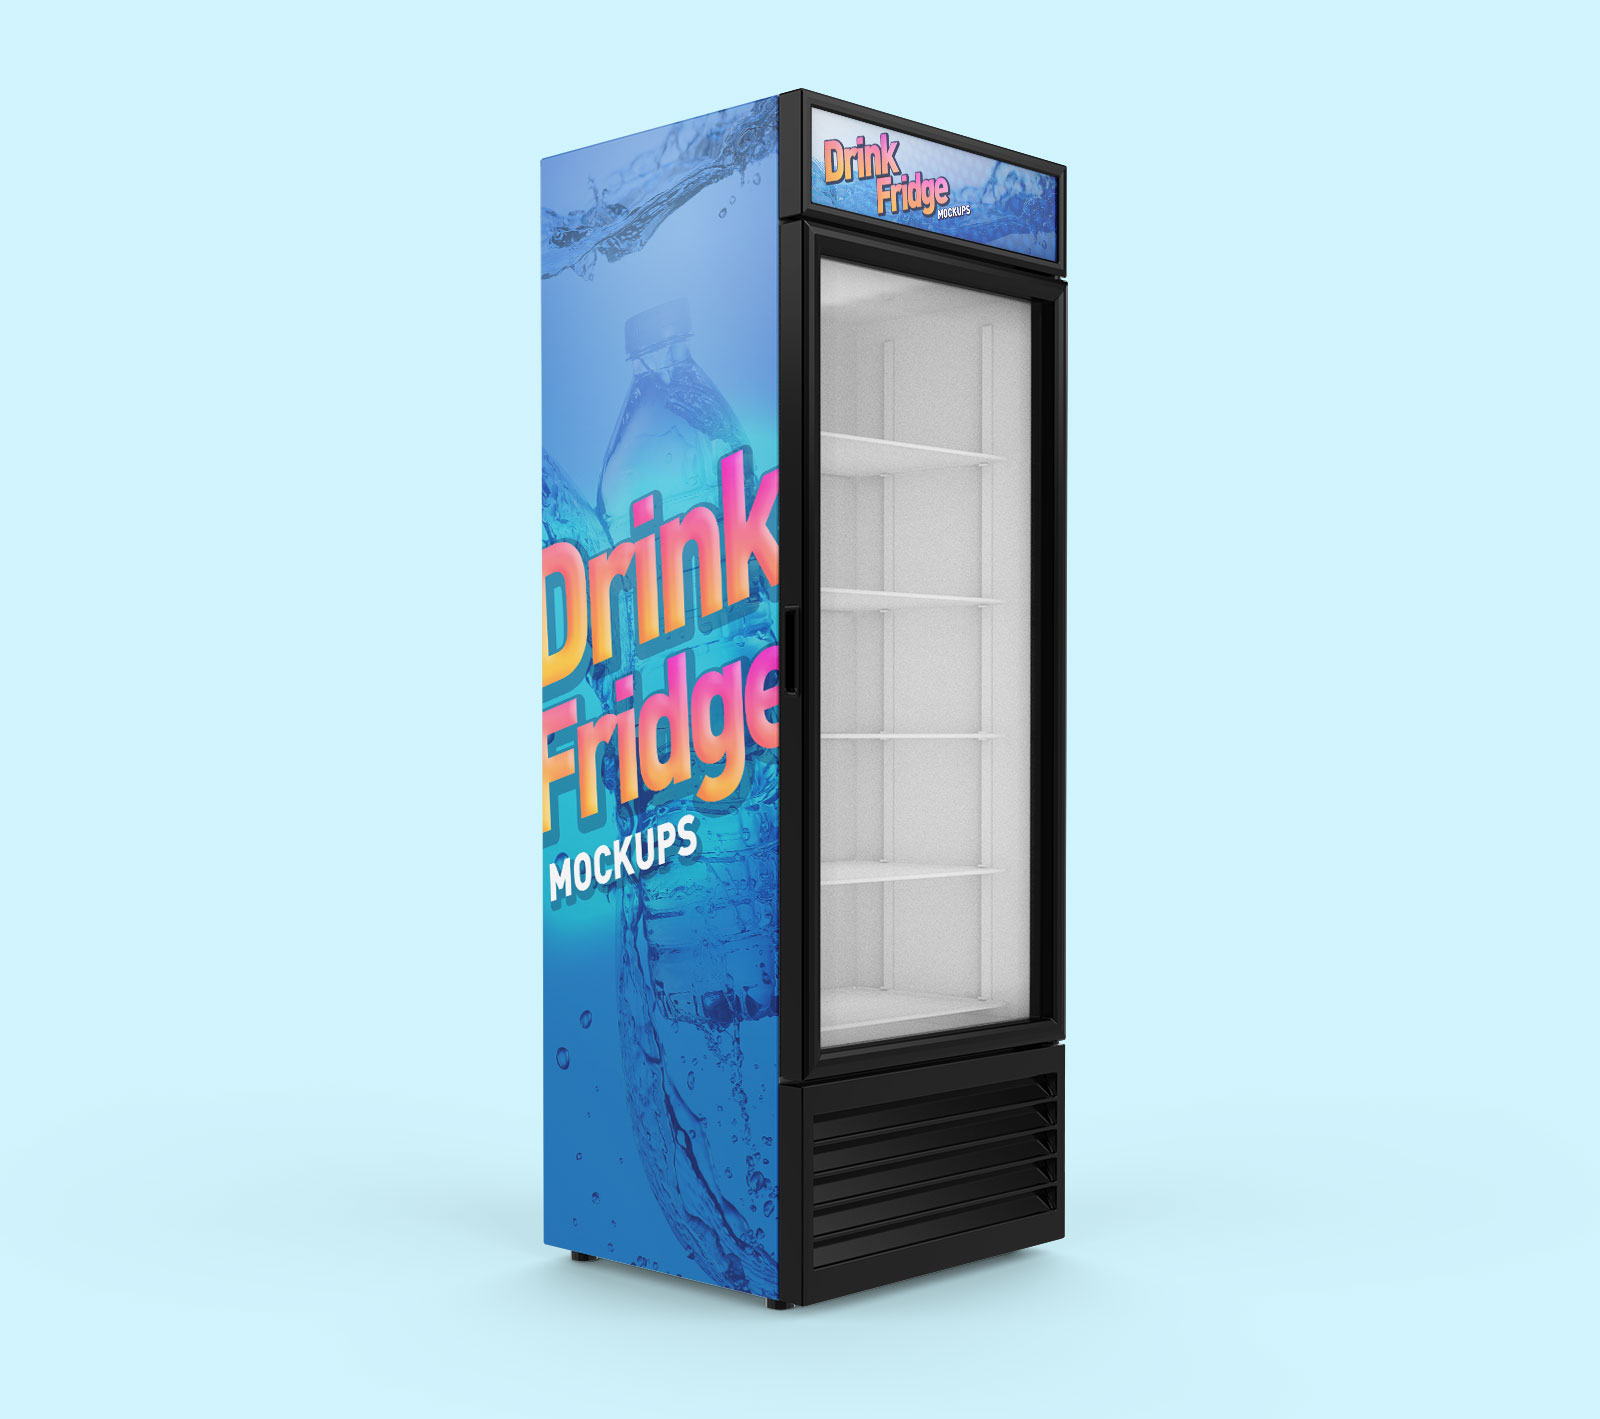 Free-Soft-Drinks-Fridge-Refrigerator-Mockup-PSD-Set-2